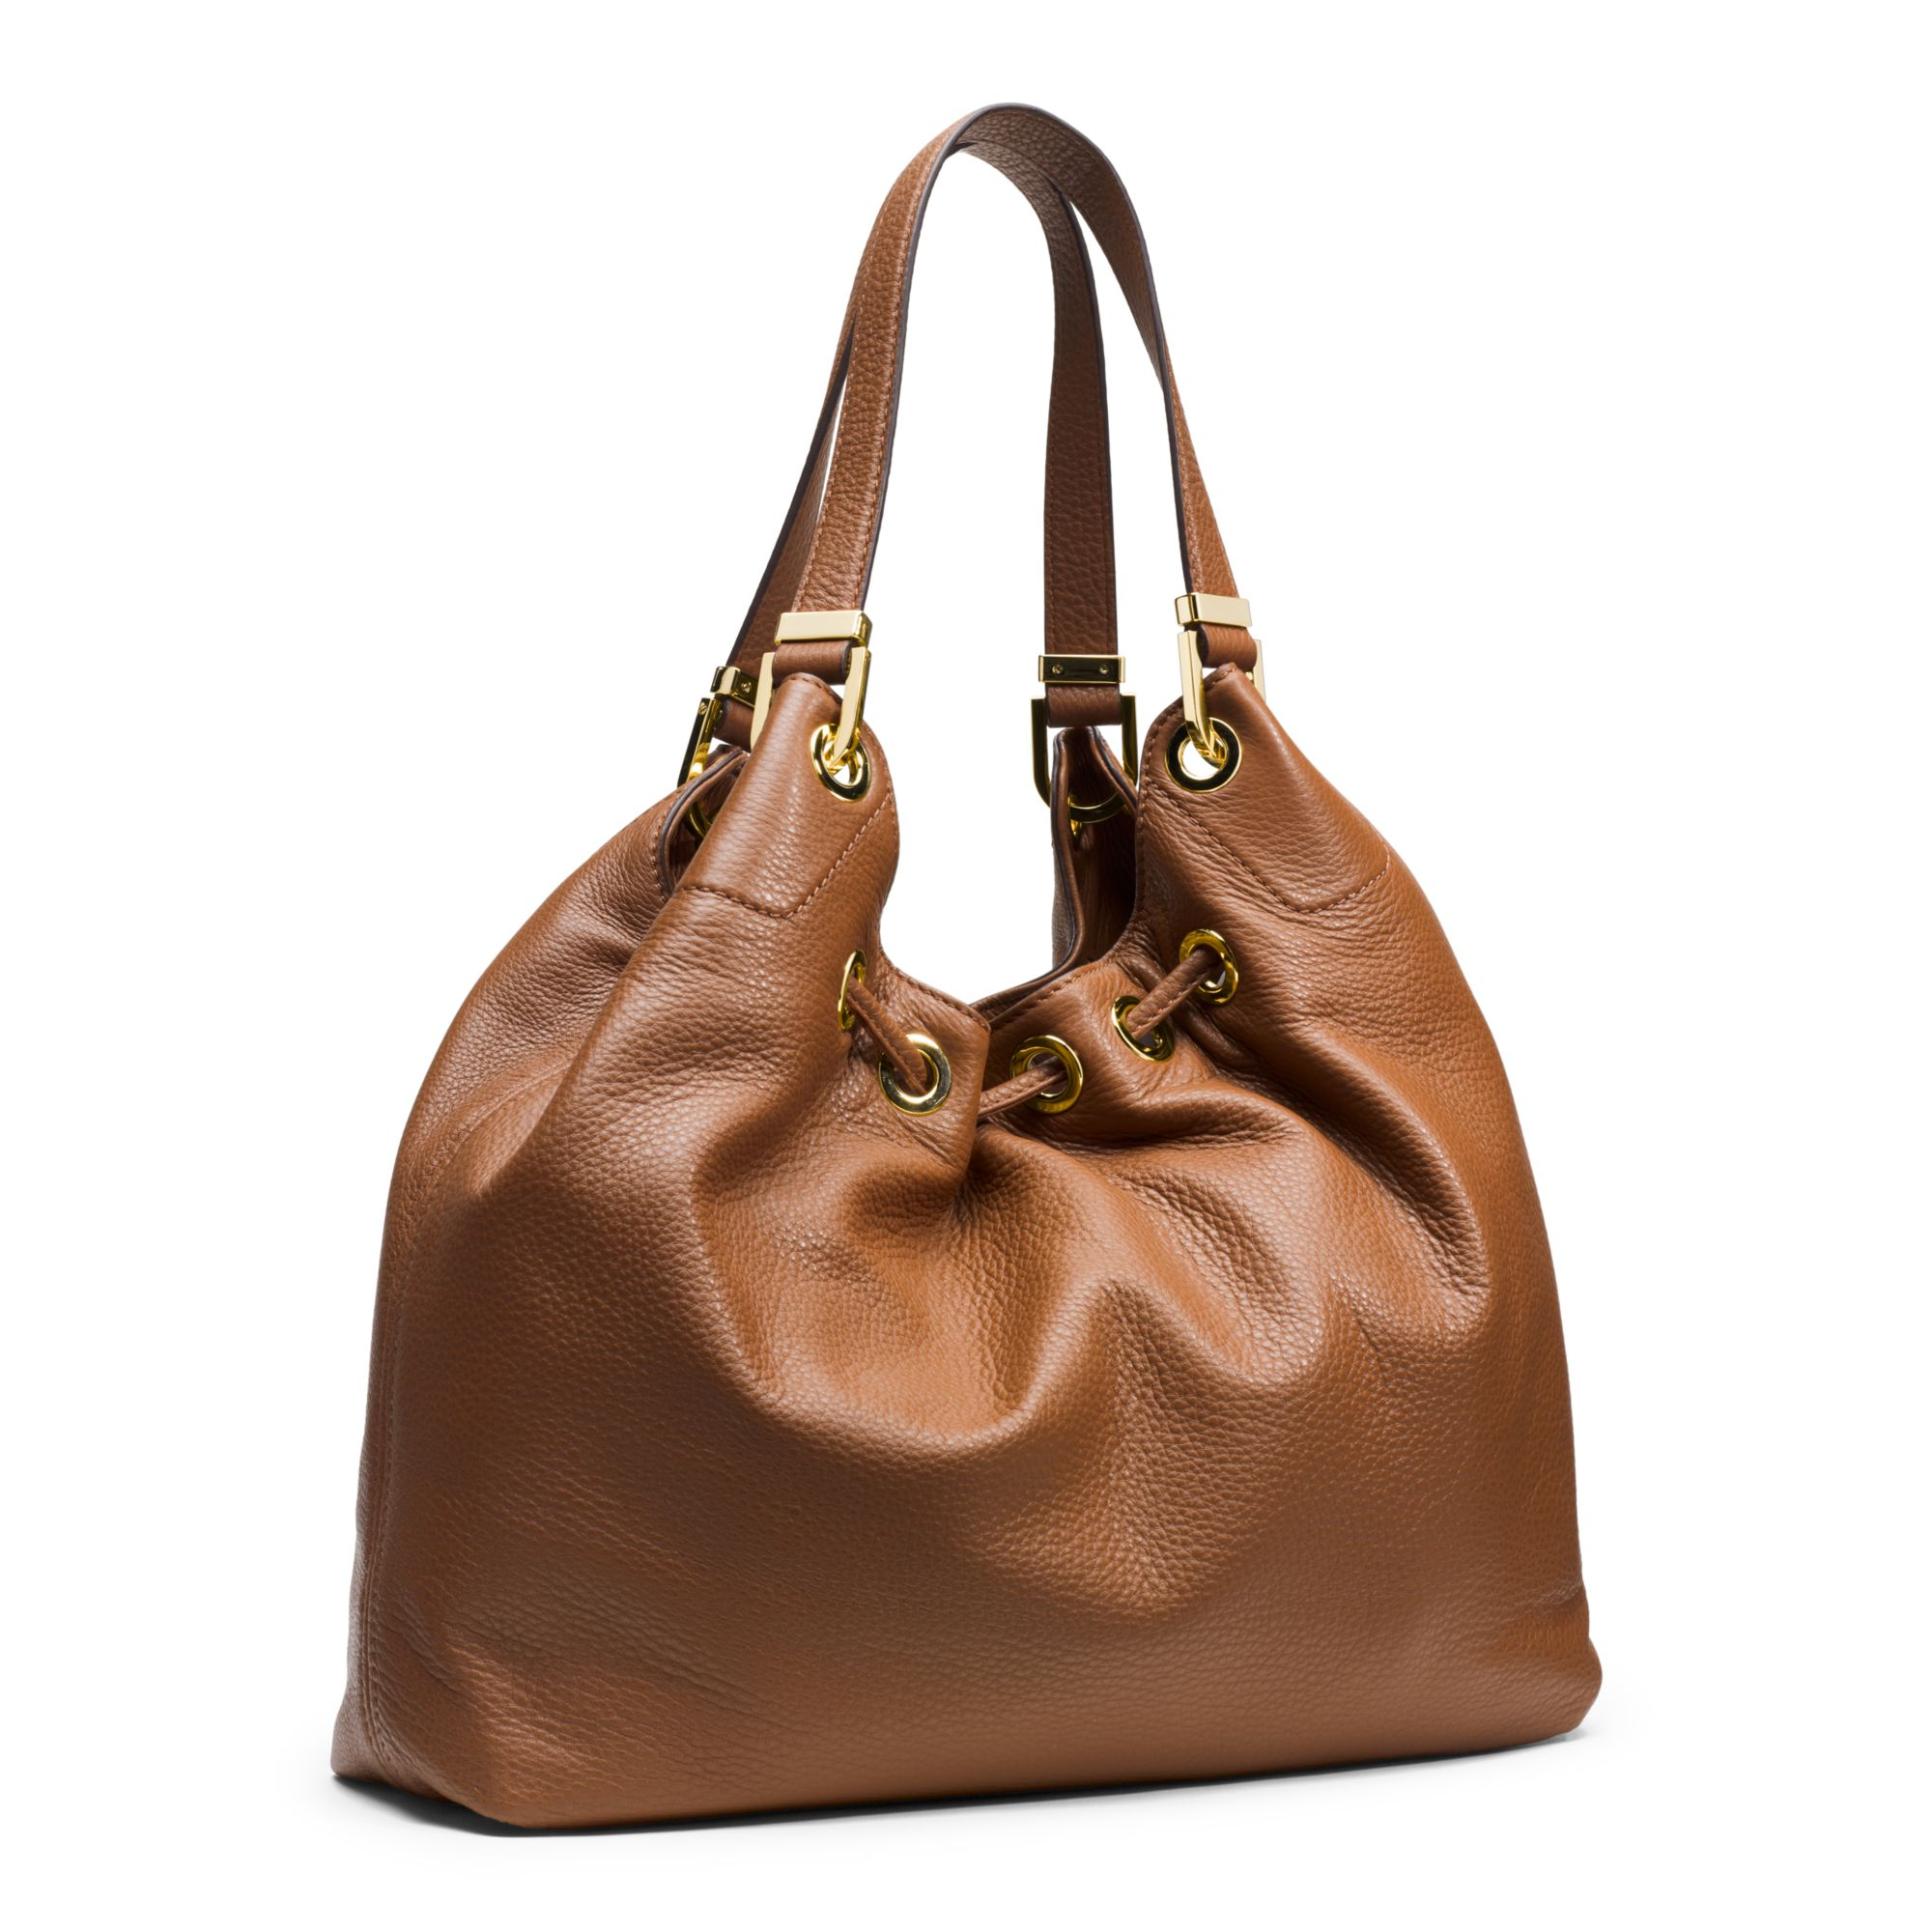 5a43d0a4cc35 Michael Kors Camden Large Leather Shoulder Bag in Brown - Lyst